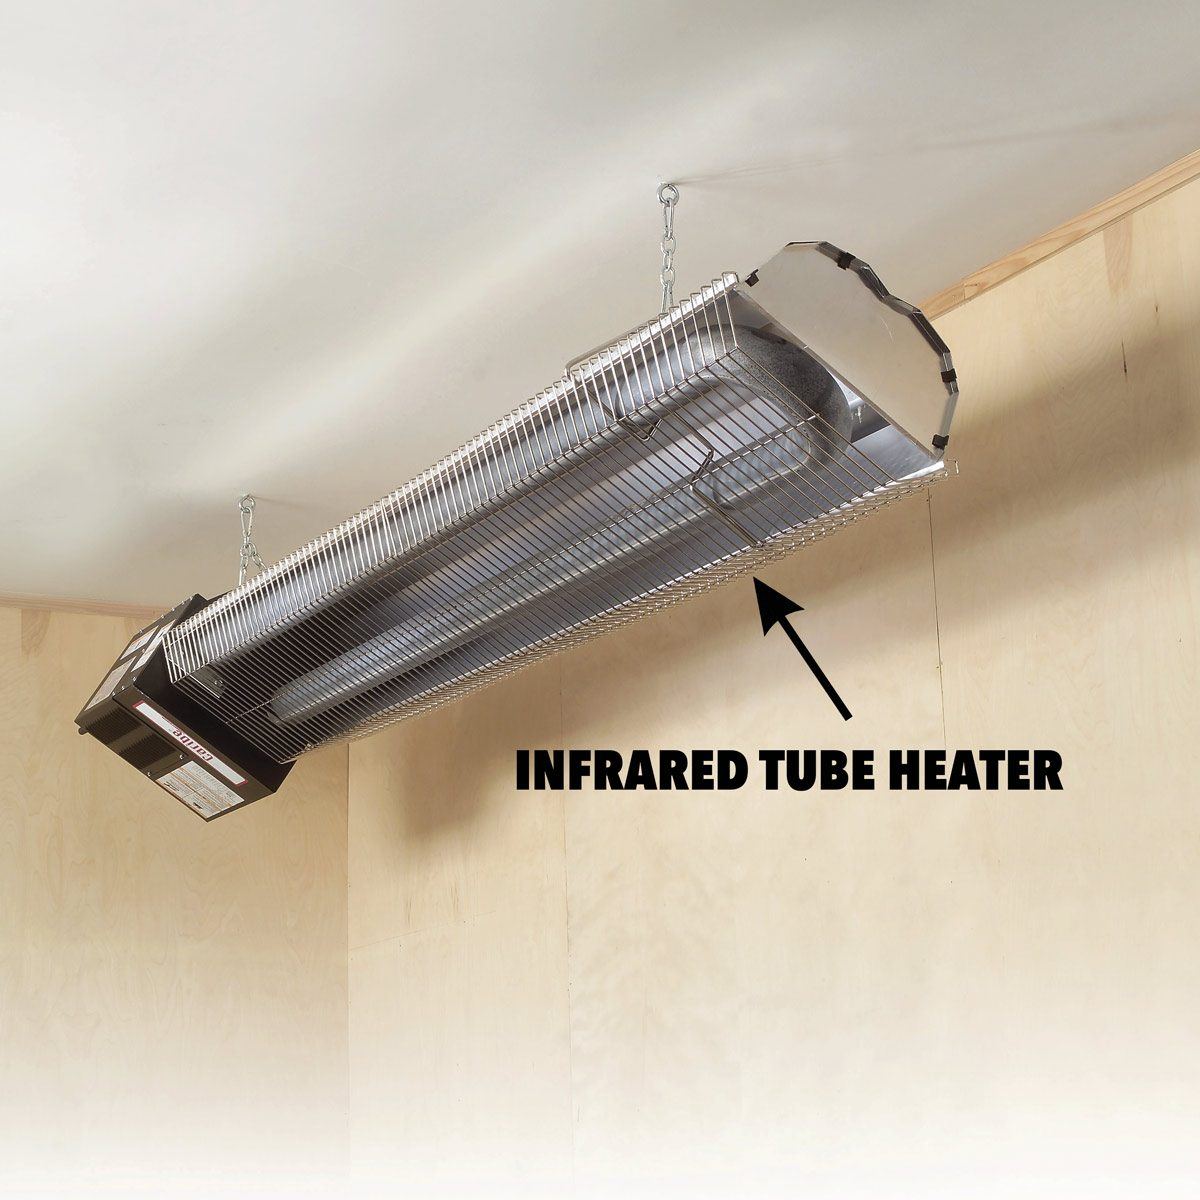 Garage Heater Cost To Run How To Heat A Garage Family Handyman The Family Handyman